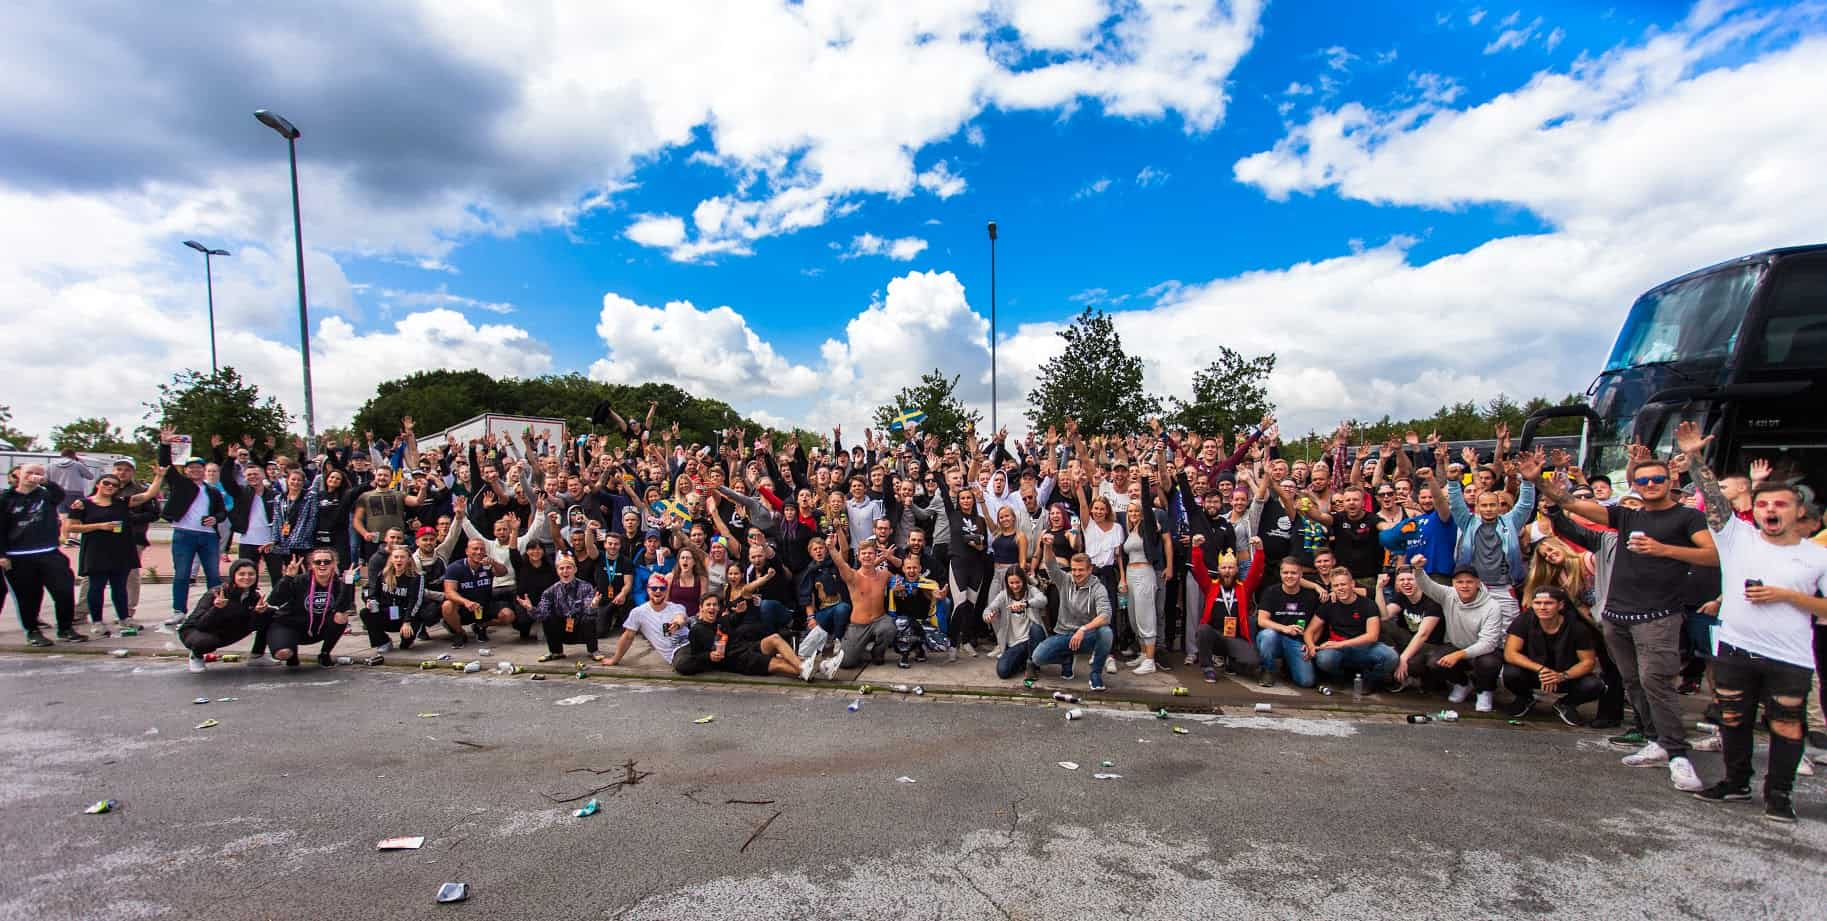 Defqon group picture